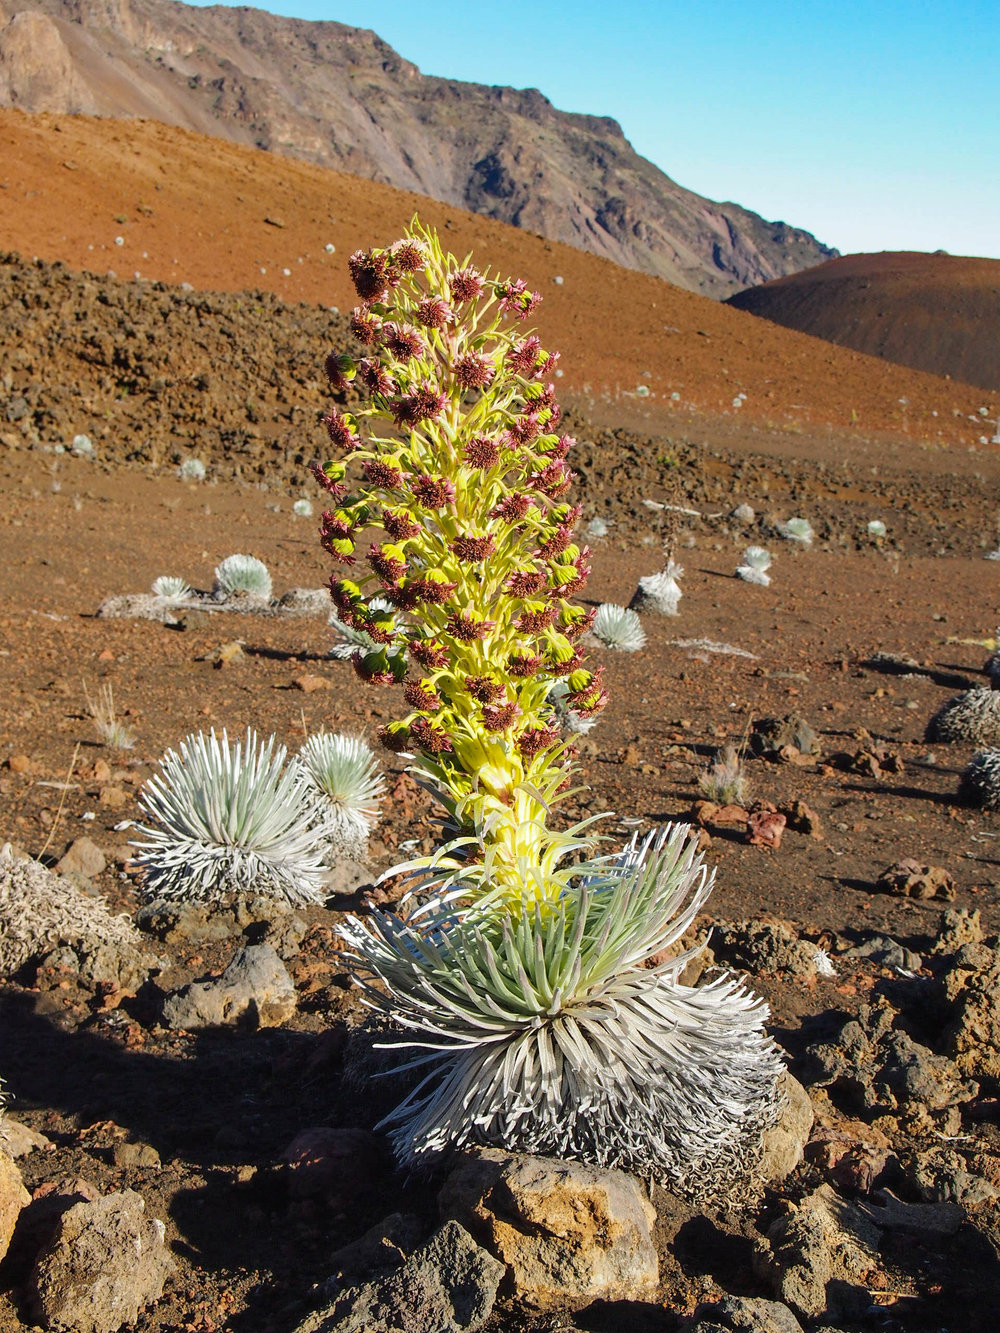 A blooming silver sword. This endangered plant is only found in Haleakala and blooms just once in it's 50-70 year lifespan, so we were pretty excited to stumble across one in full bloom!